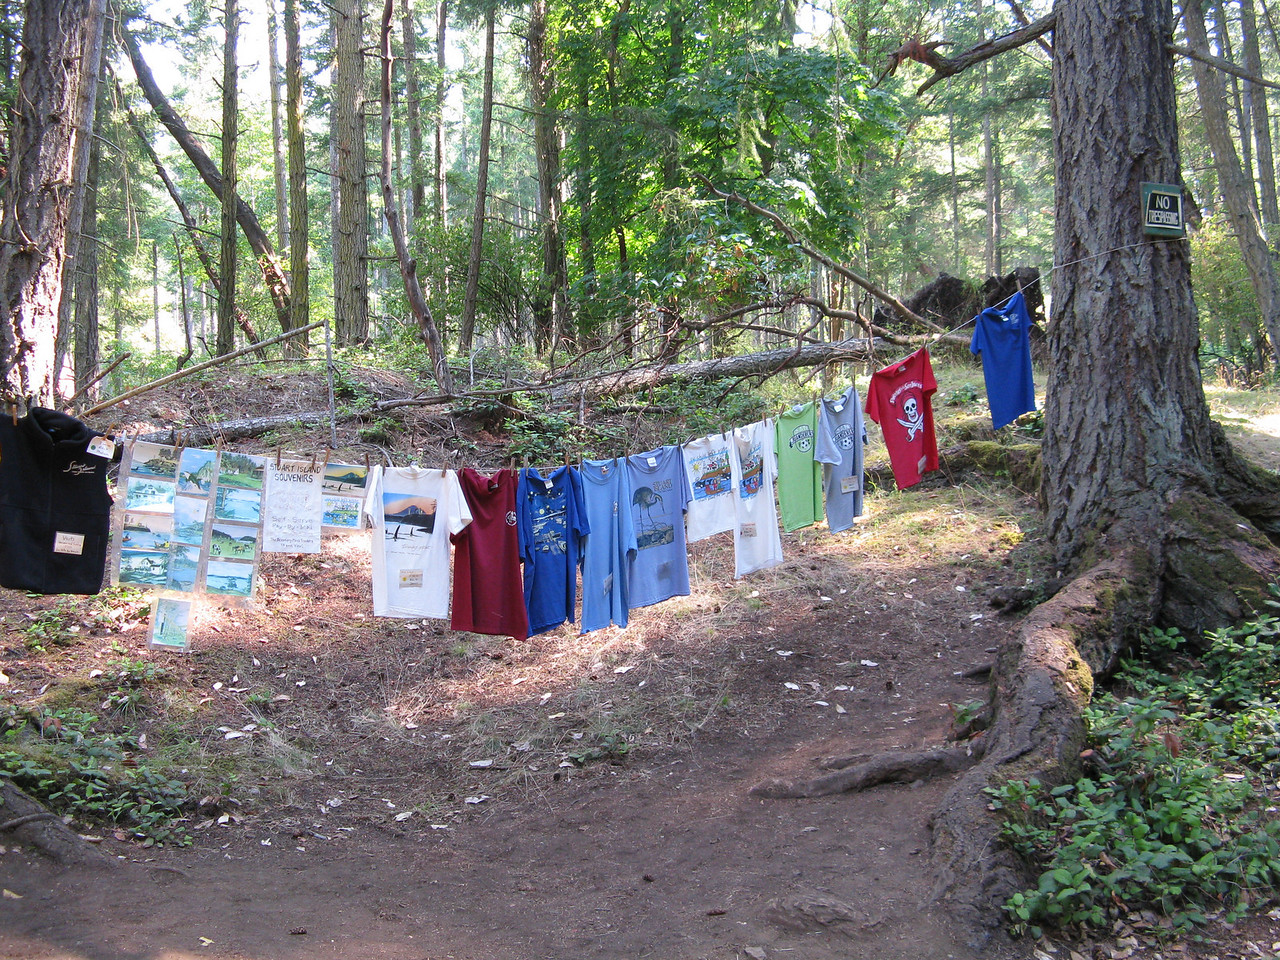 We bought T-shirts on the honor system near the school on Stuart Island.  You pick up the T-shirt and mail the check after you leave the island.